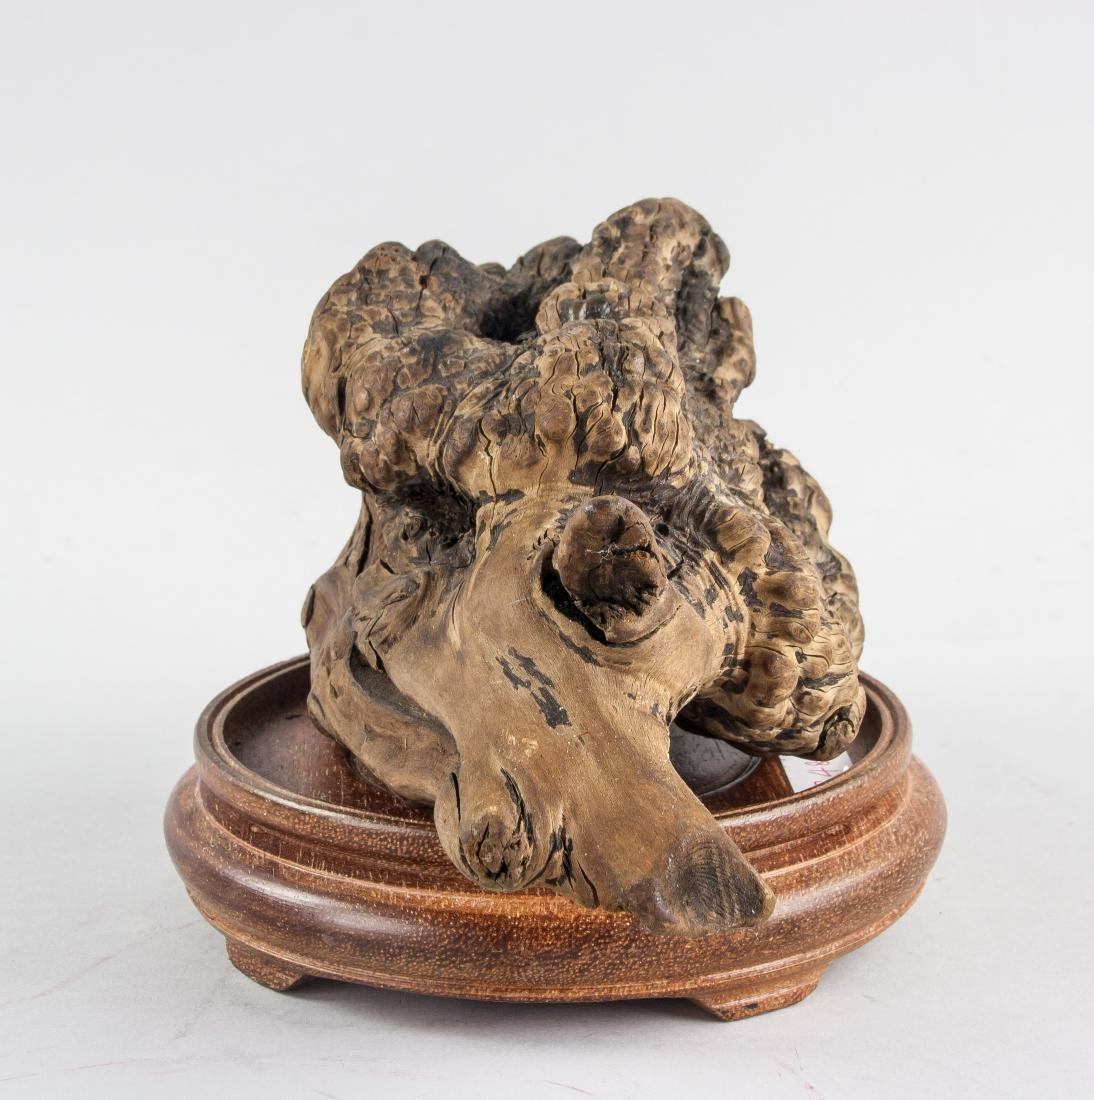 Chinese Fossilized Agarwood Scholar's Stone - 2